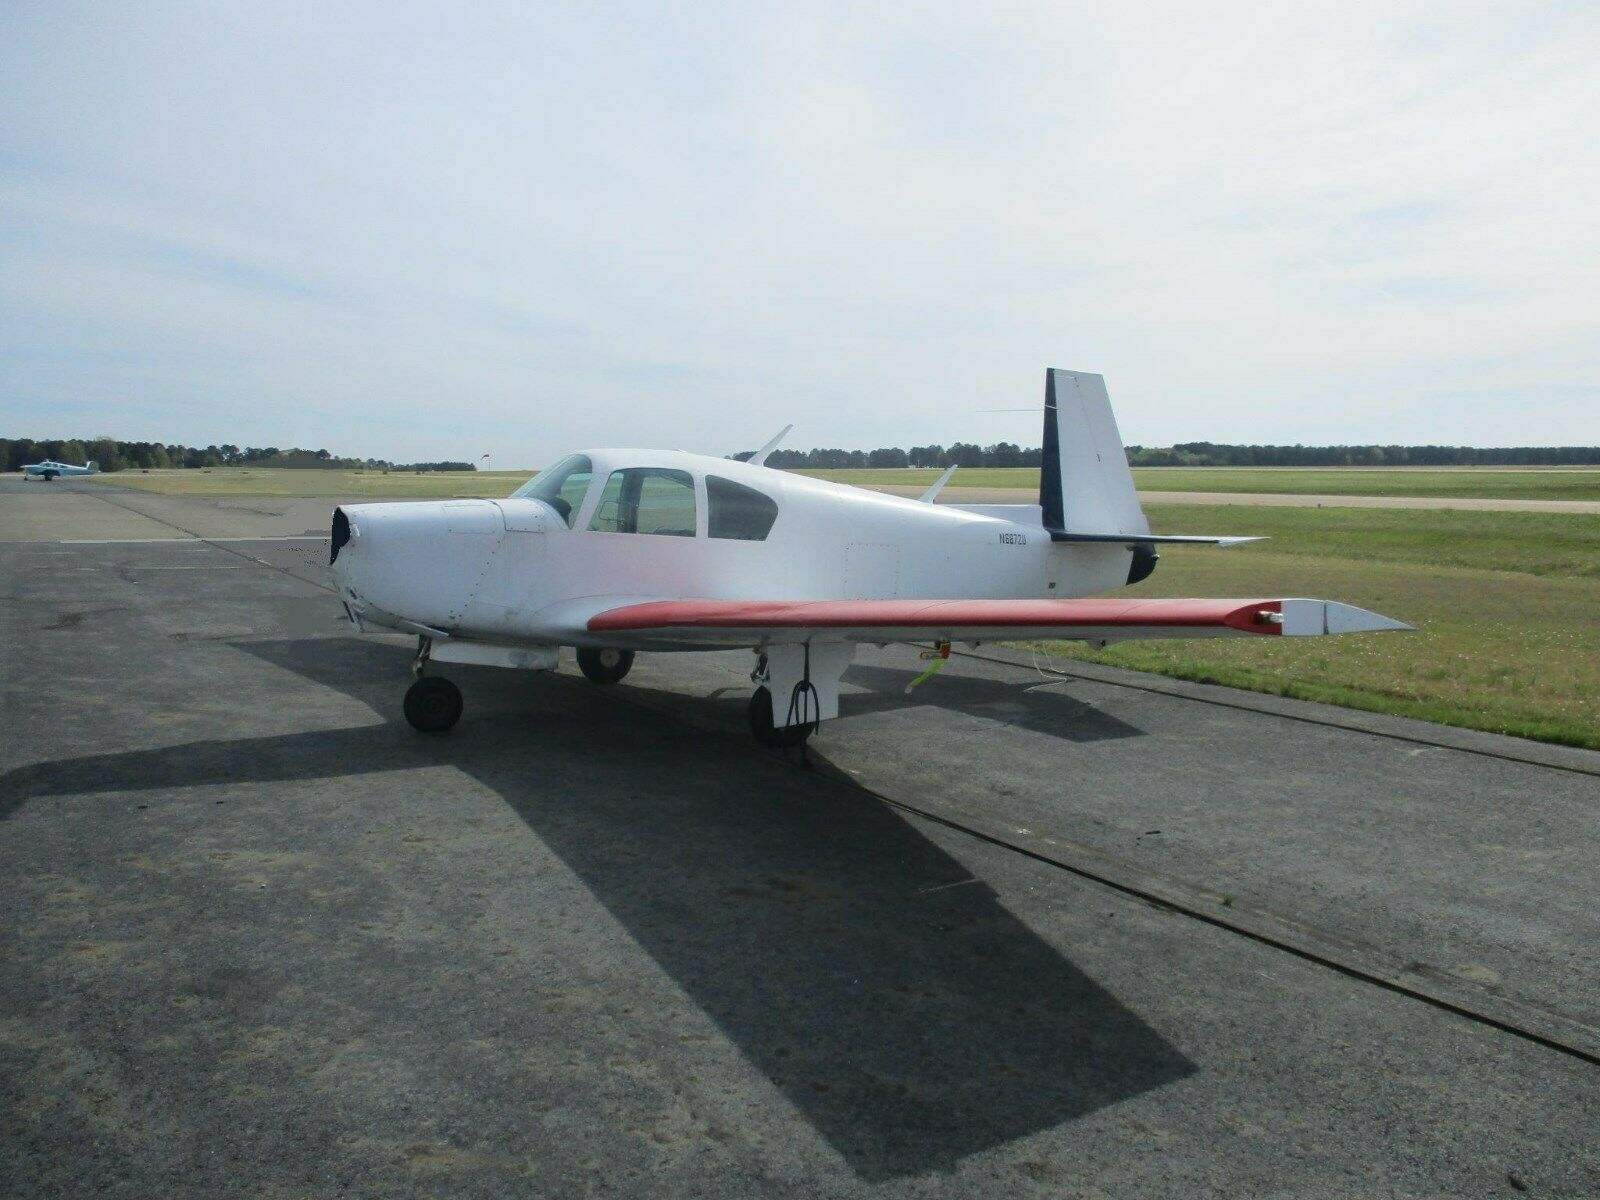 Airframe 1963 Mooney M20C aircraft